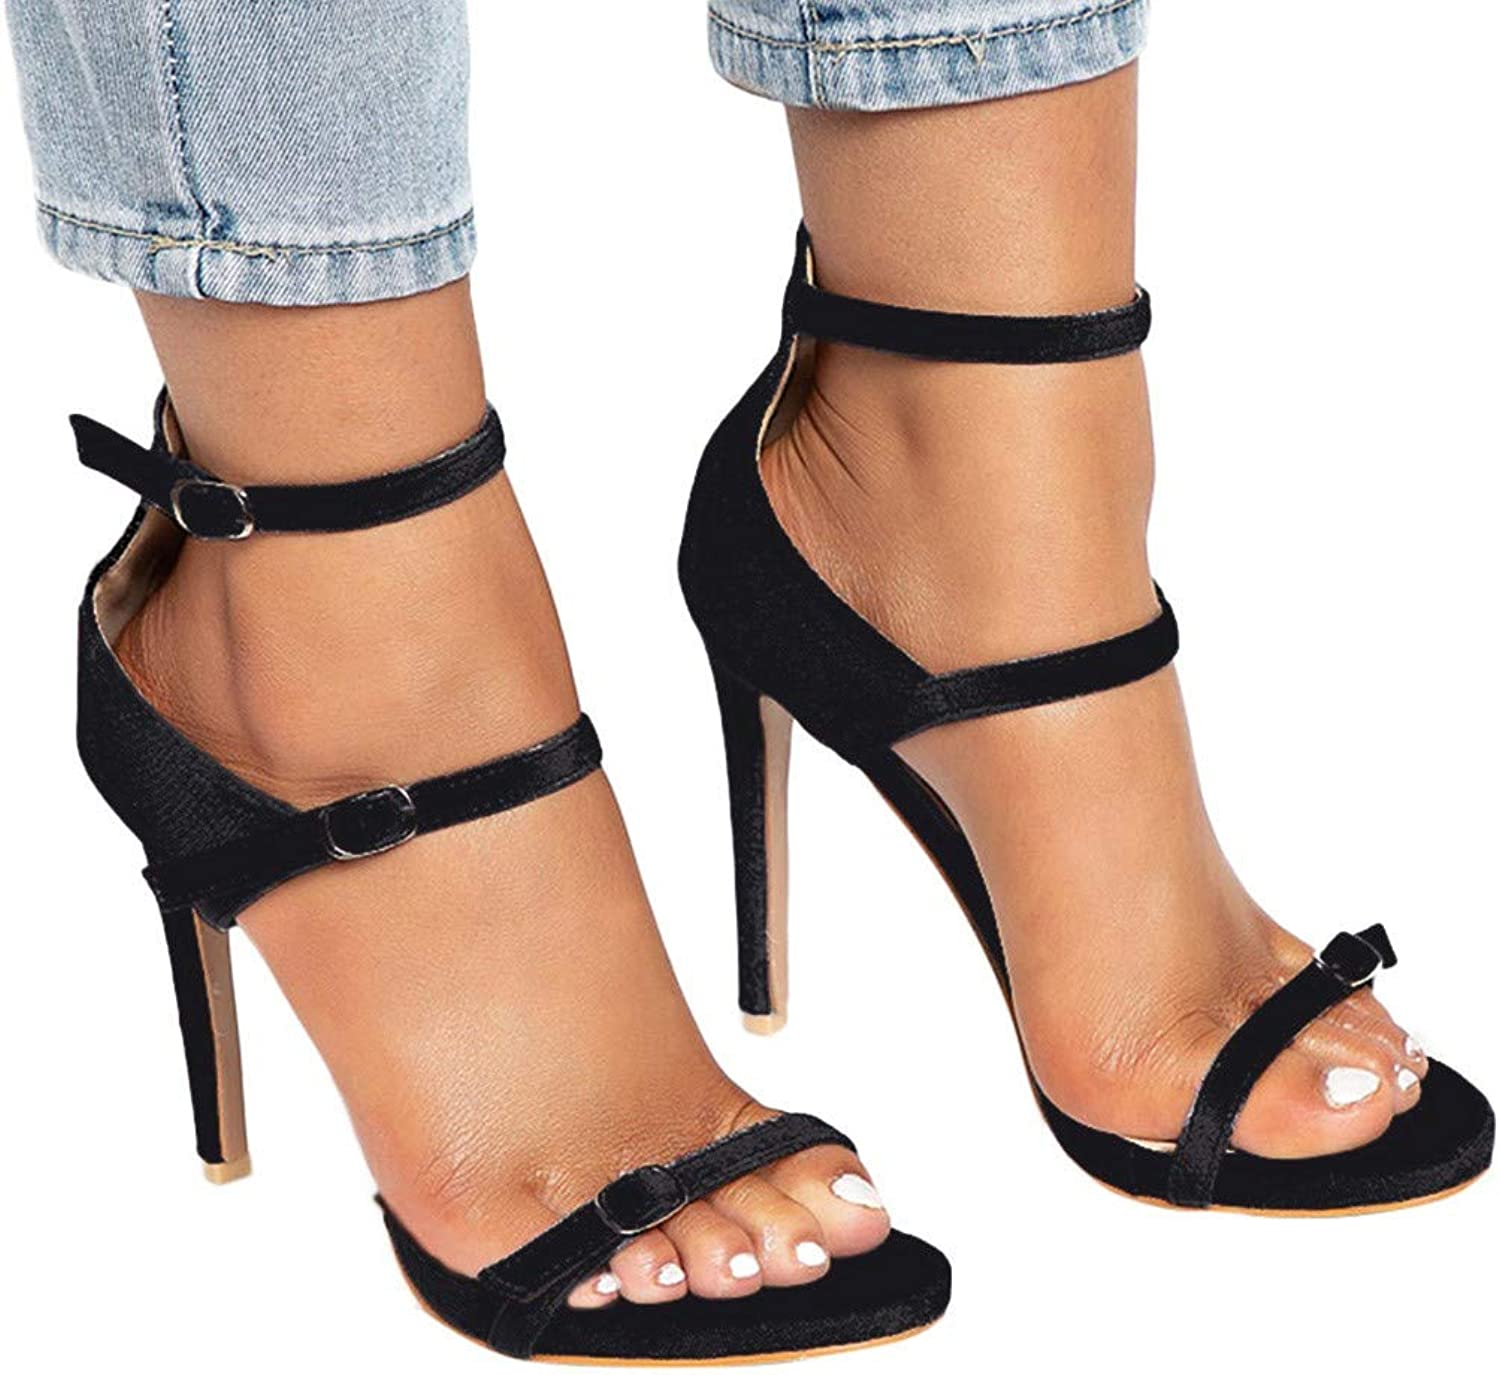 Women Strappy Sandals with Three Straps Evening Dress High Heels Classic Open Toe Stiletto shoes